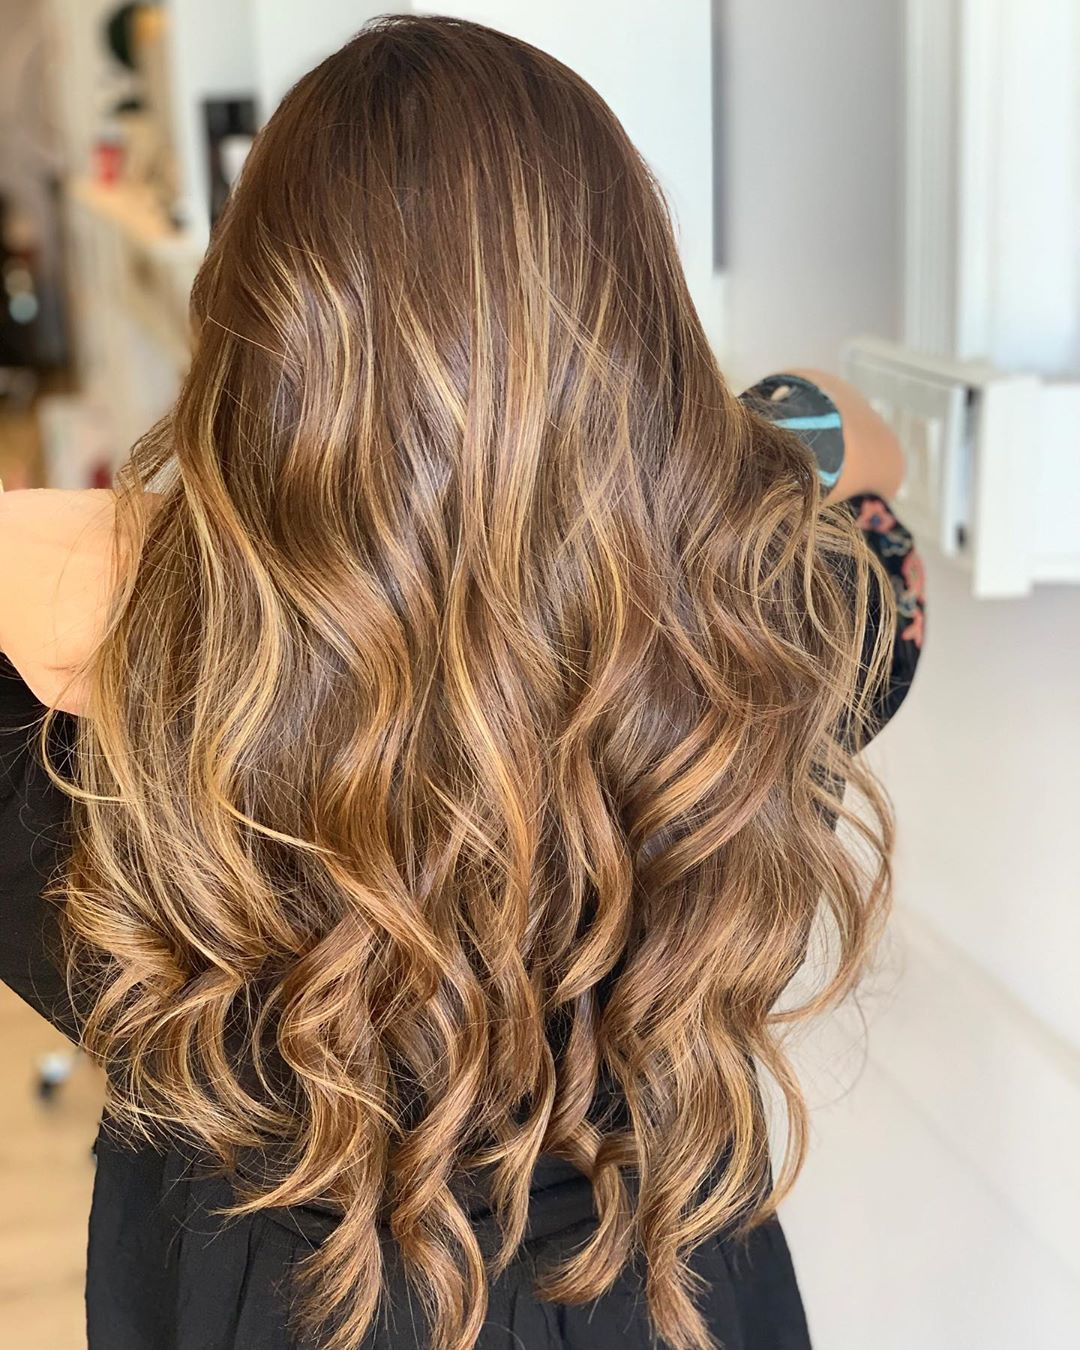 woman with long curly honey brown hair